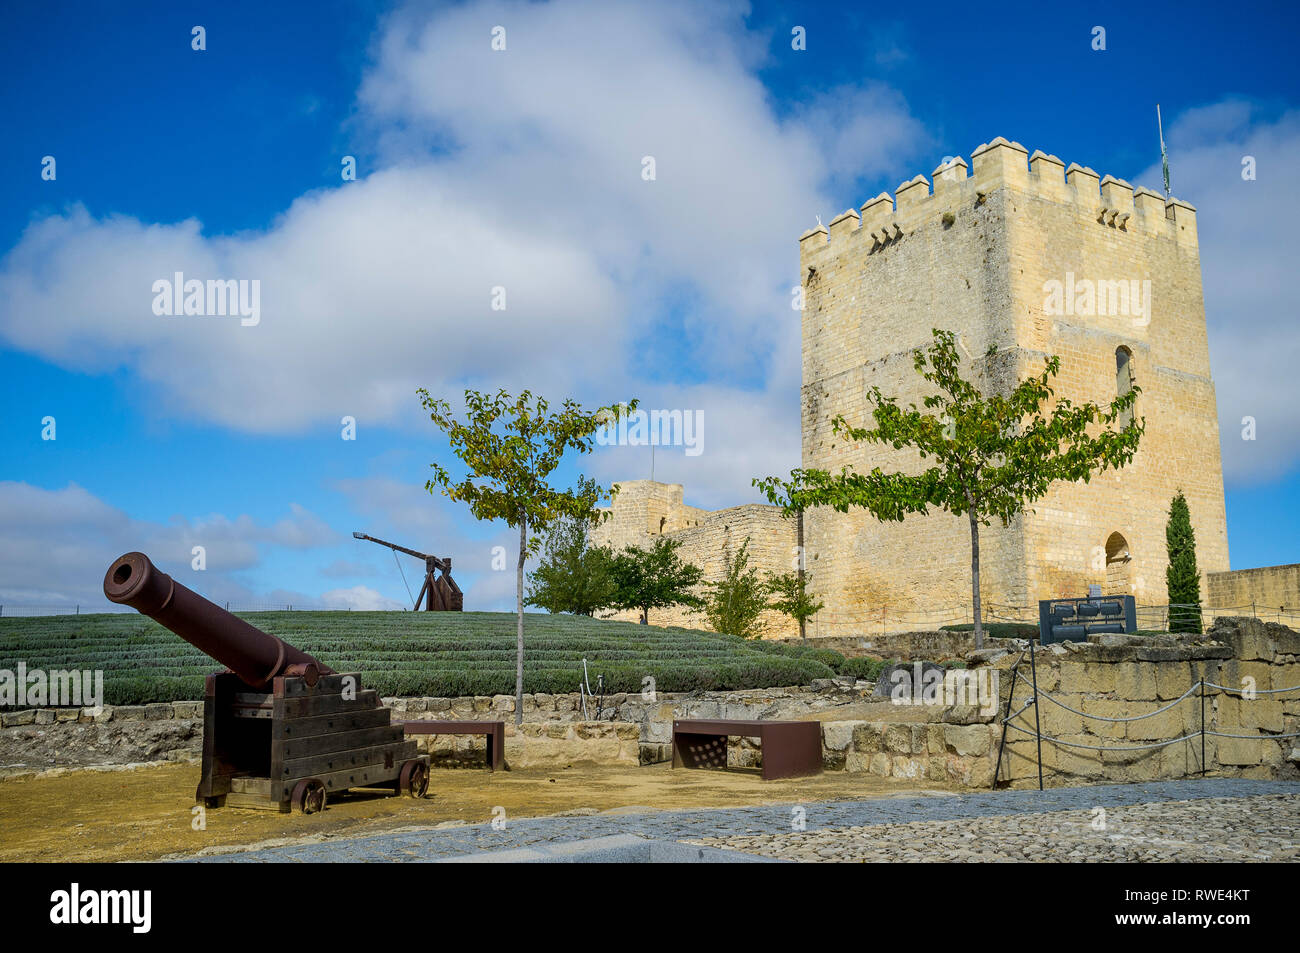 Inside Alcala la Real Castle  showing the Alcazaba tower, lavendar garden and trebuchet + cannon defensive weapons, Jaen Province, Andalusia, Spain. - Stock Image